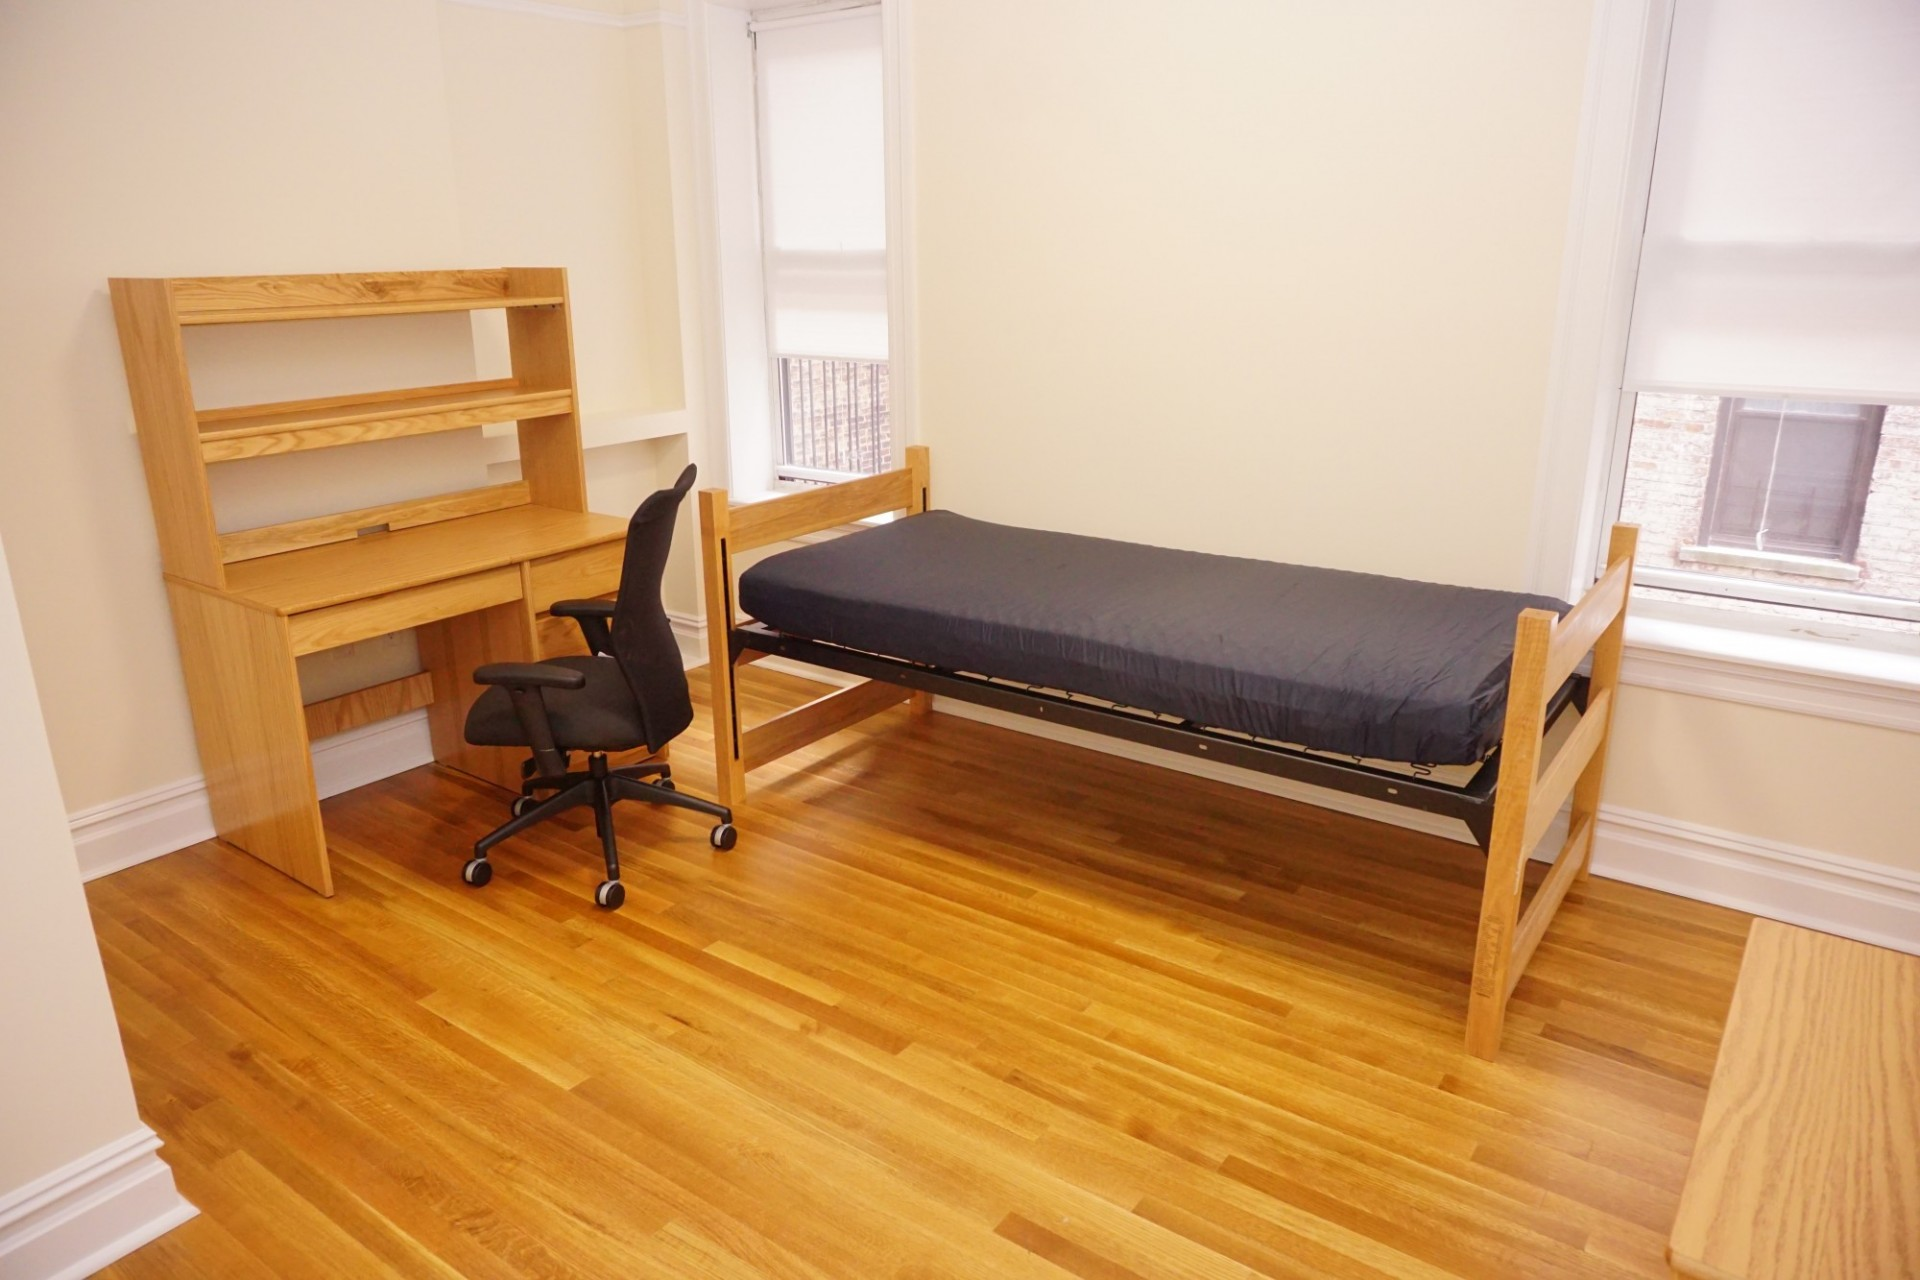 Example of a private bedroom in a two bedroom apartment share